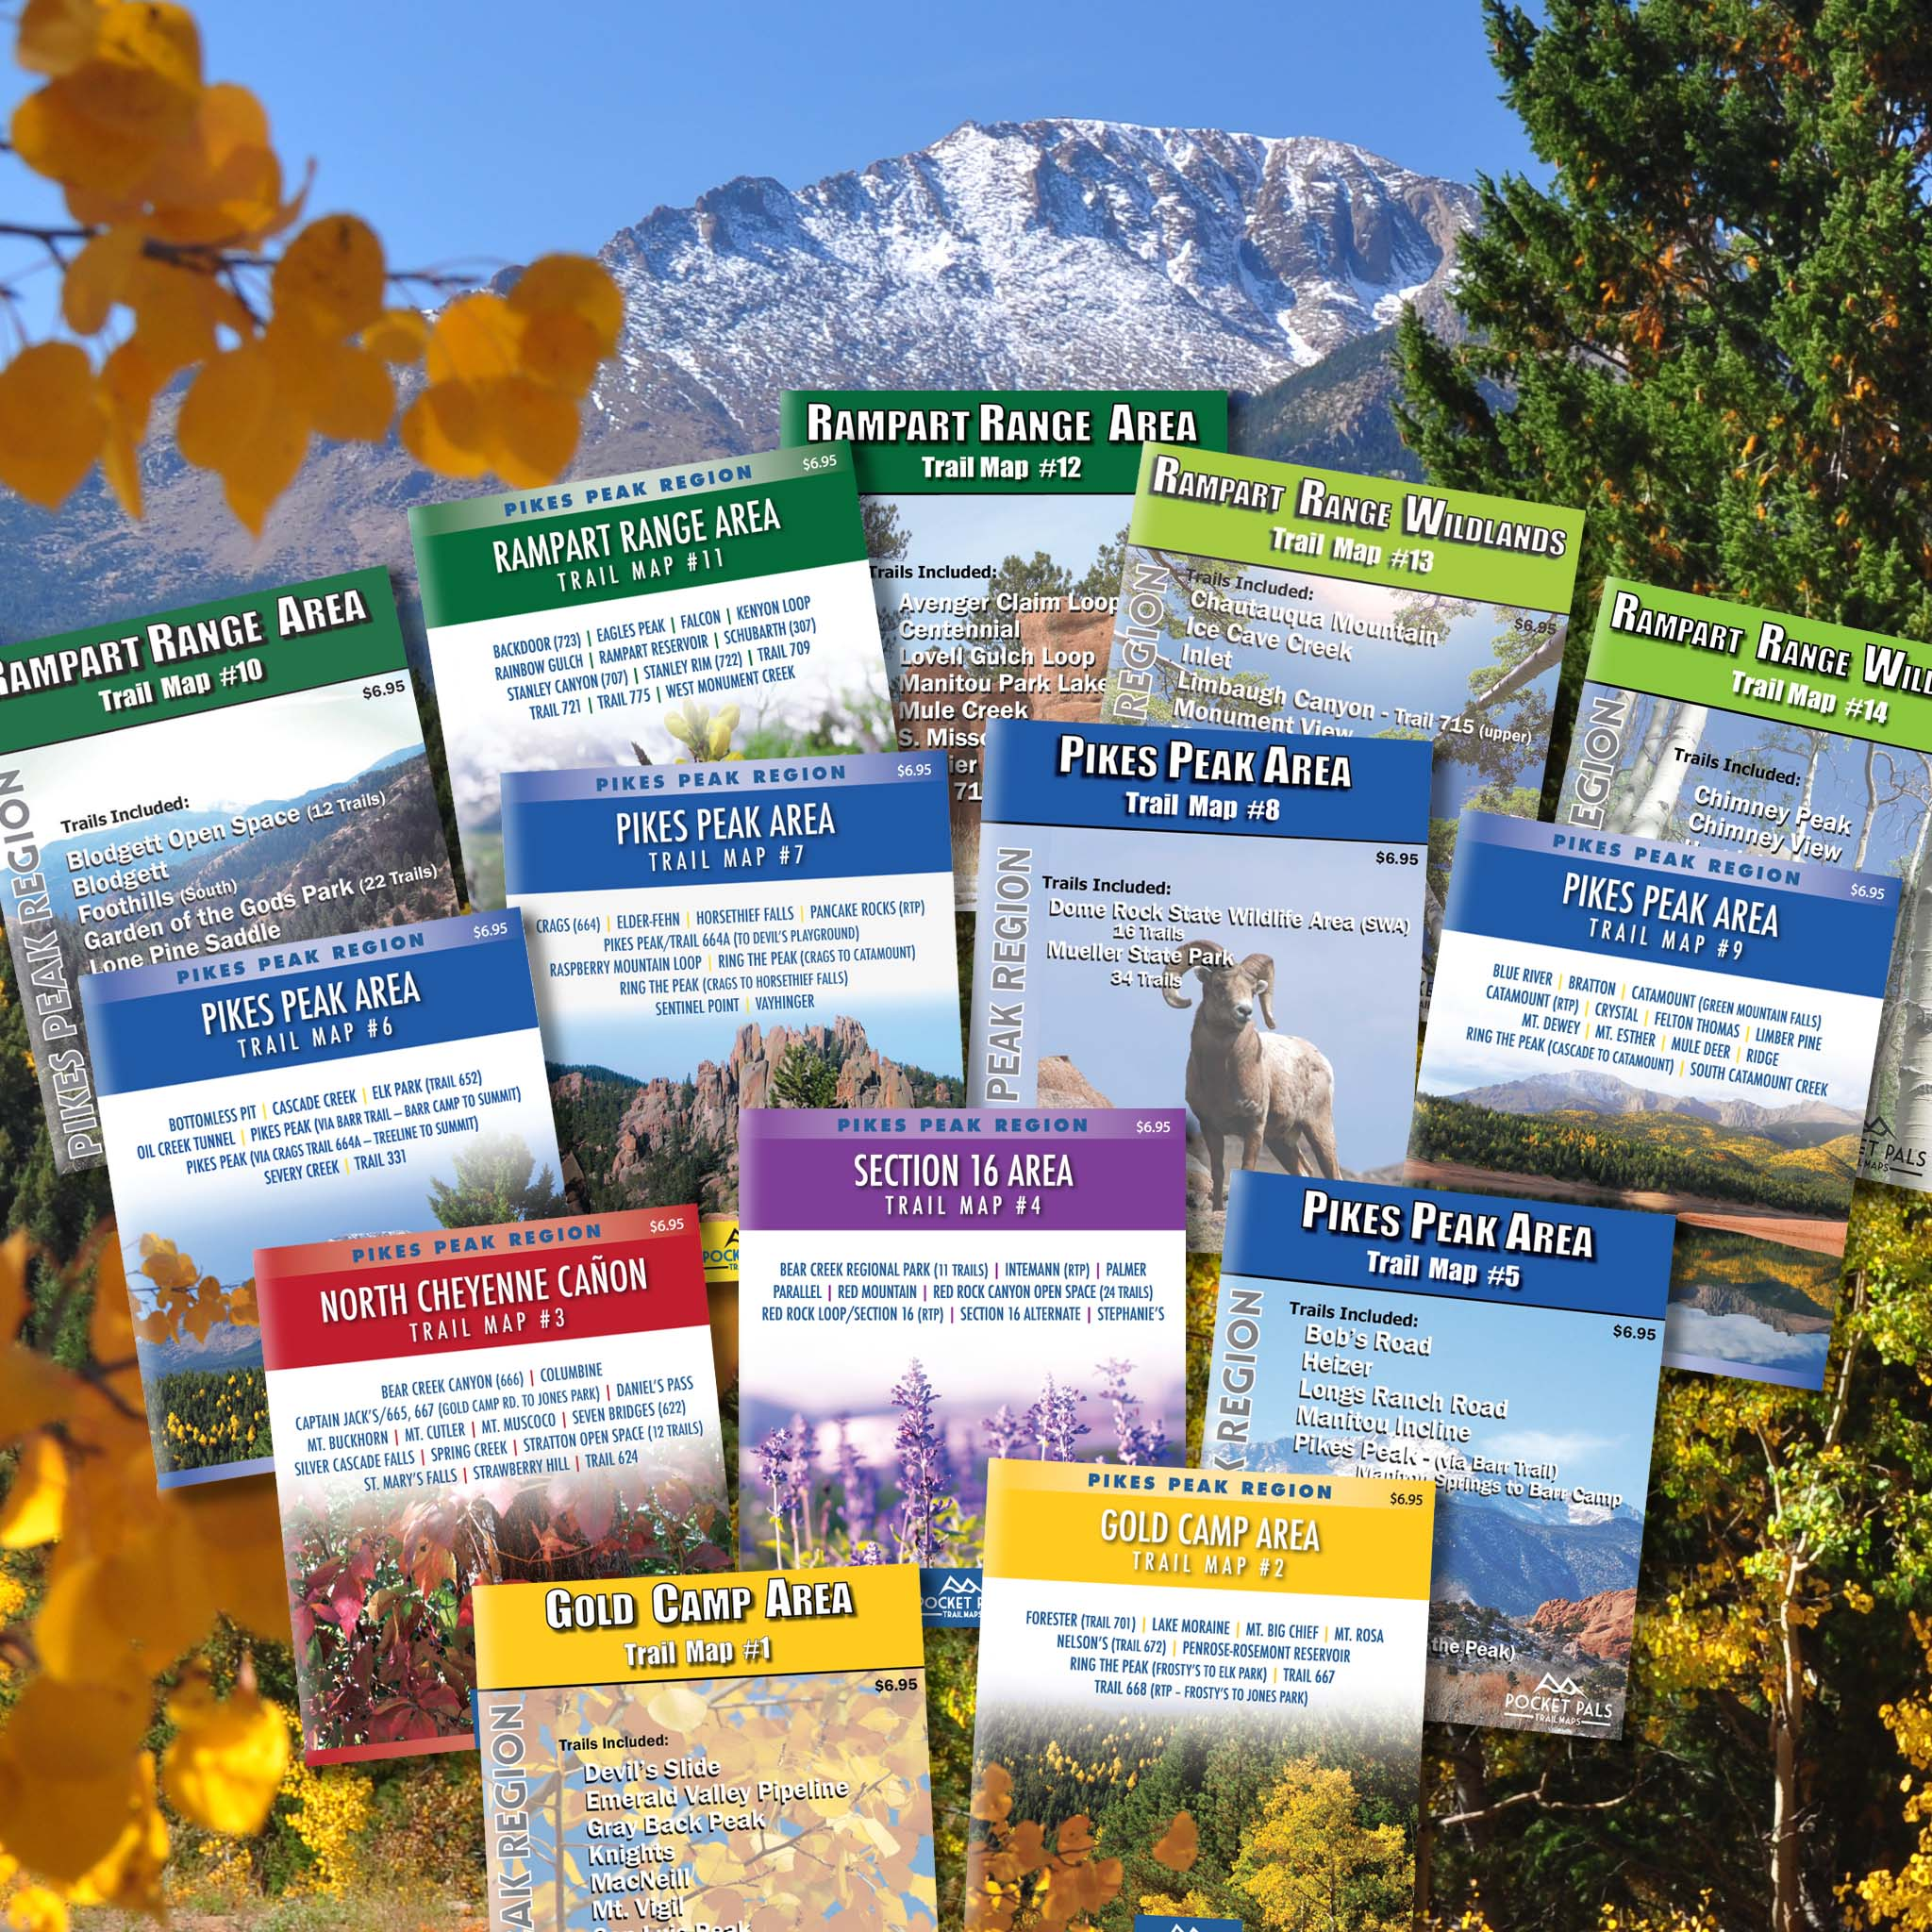 N cheyenne canon mt cutler trail information pocket pals trail for a limited time publicscrutiny Images